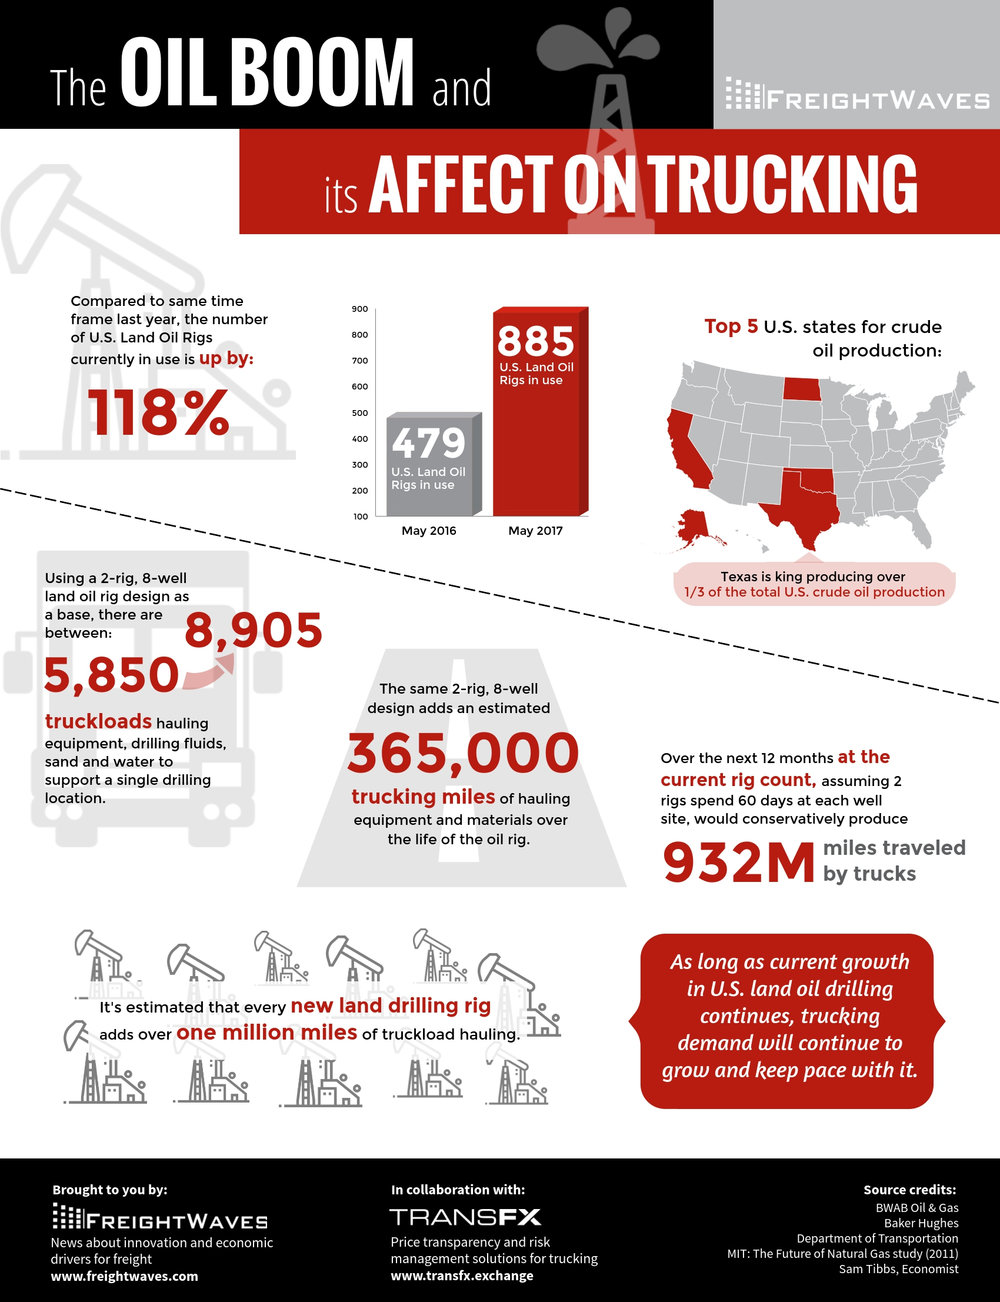 Oil boom and trucking